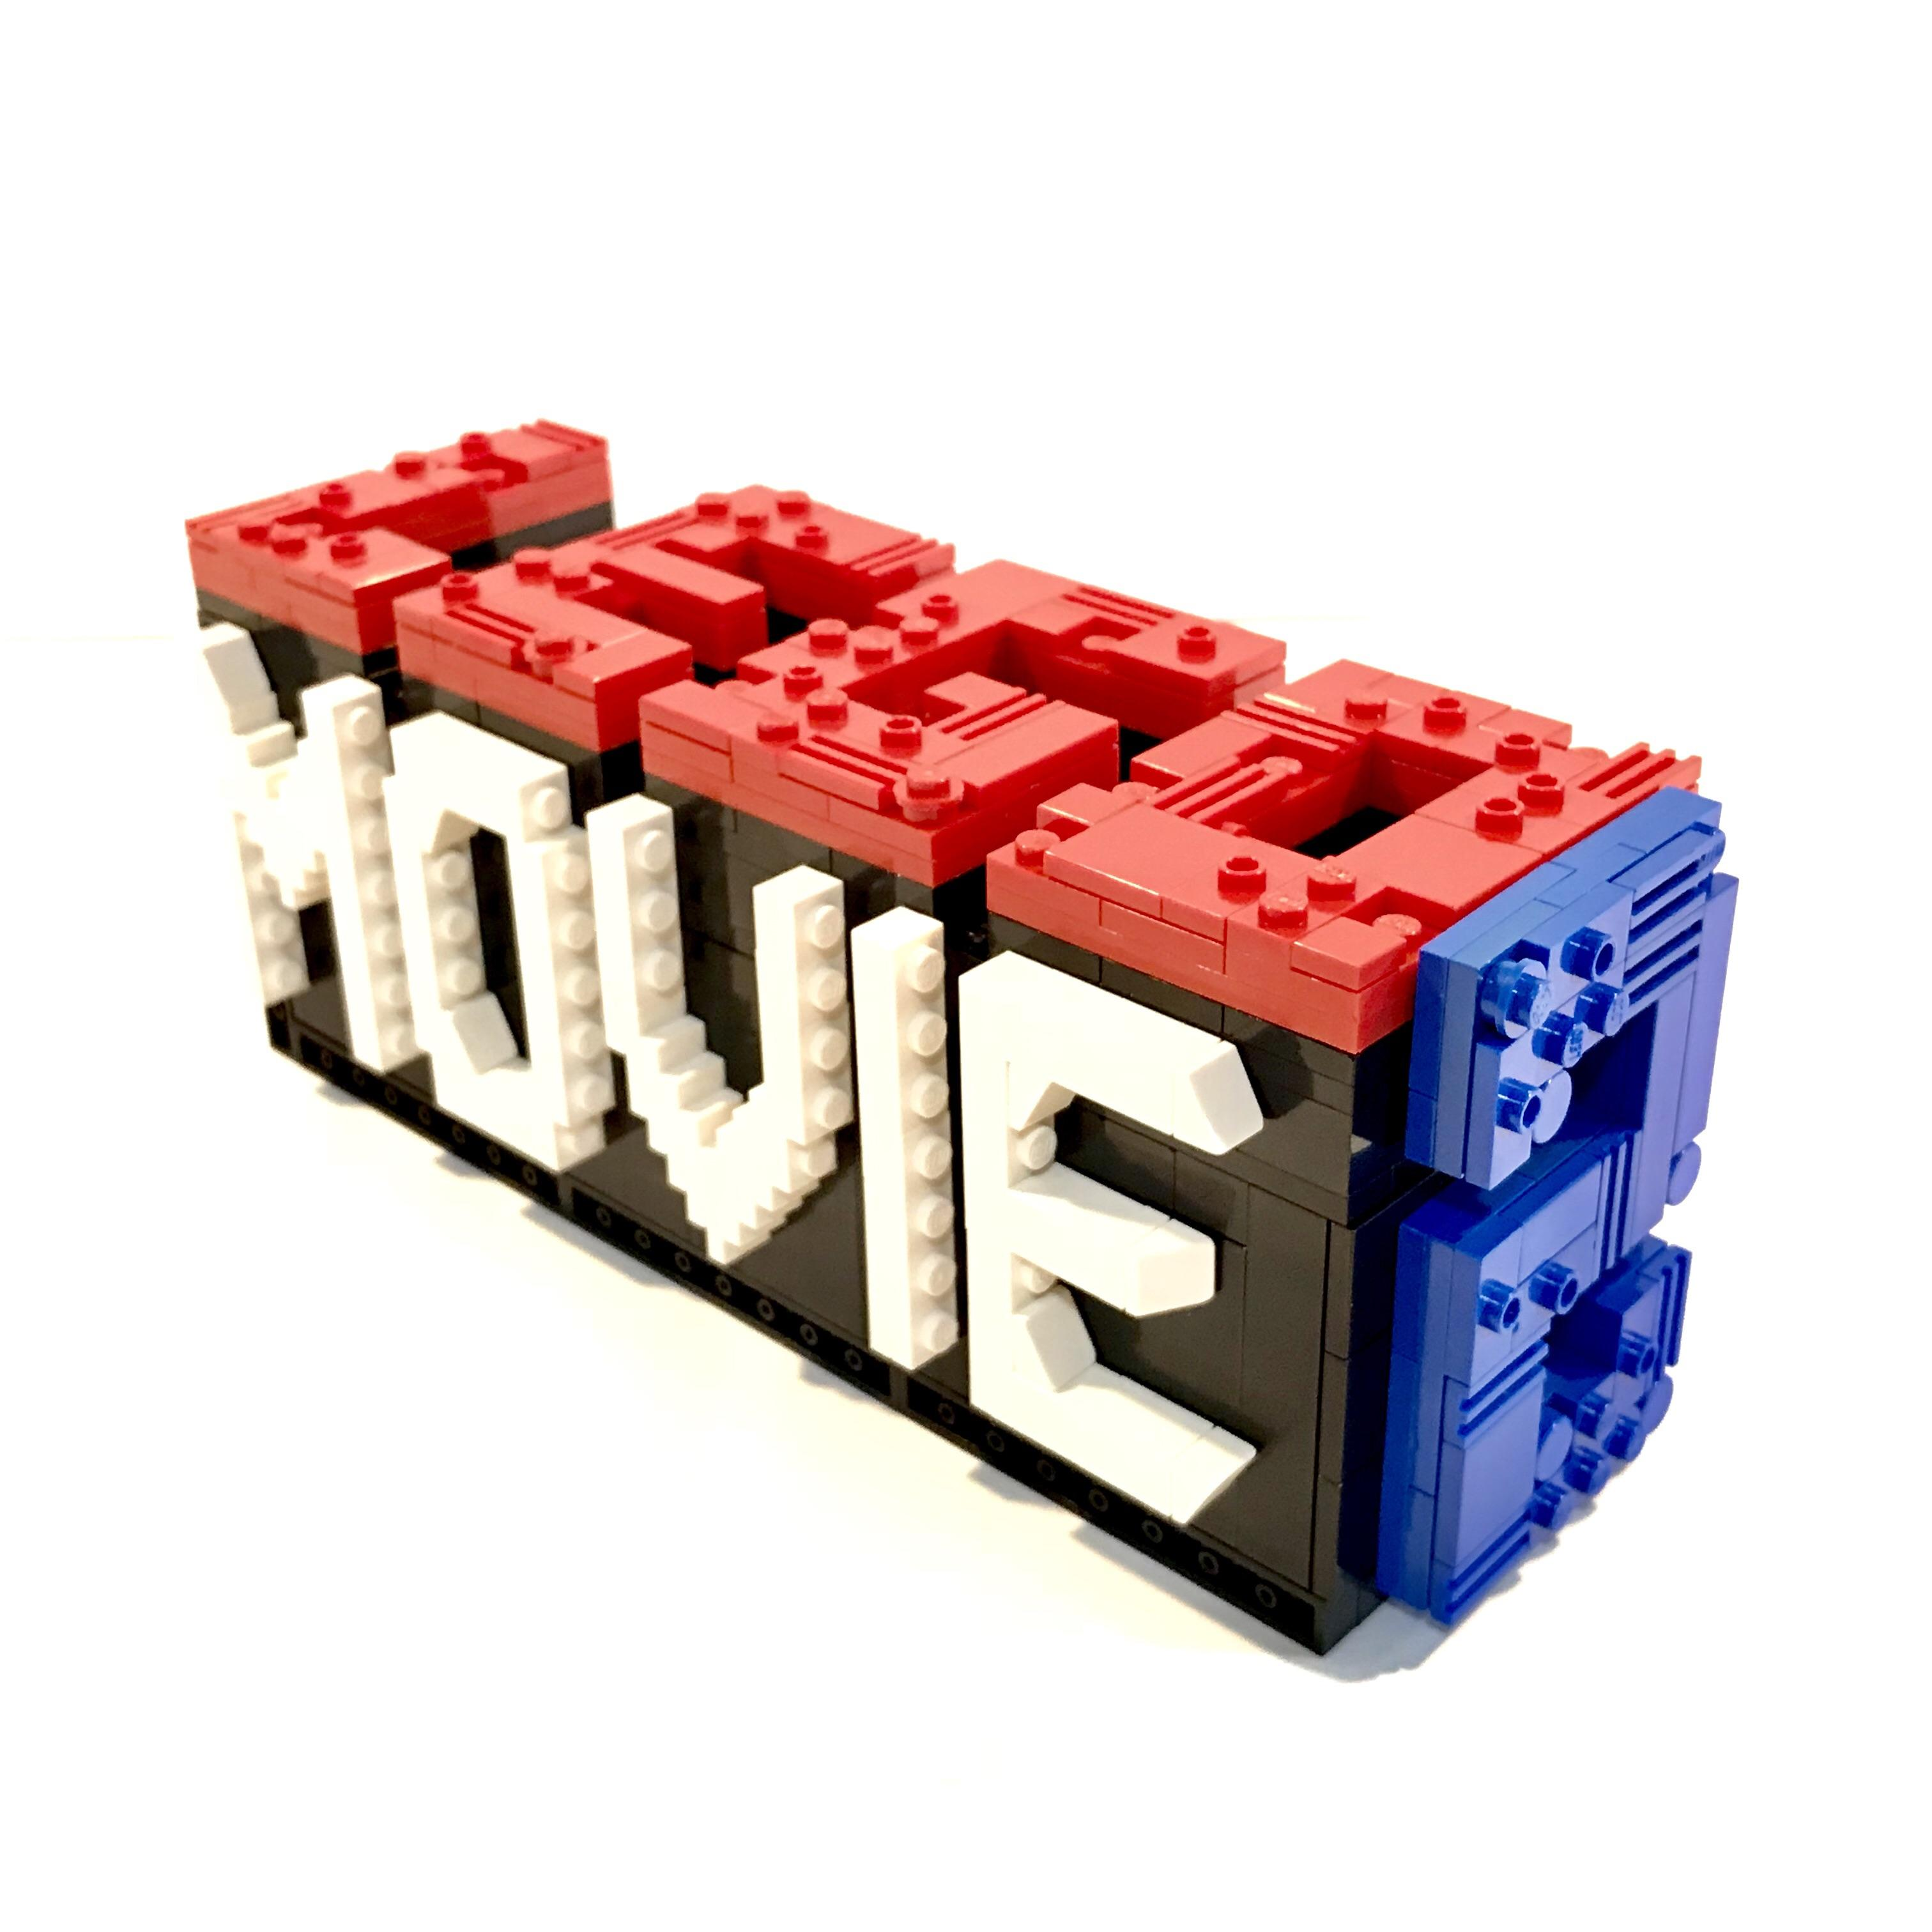 Updated my The Lego Movie logo in anticipation of the sequel.